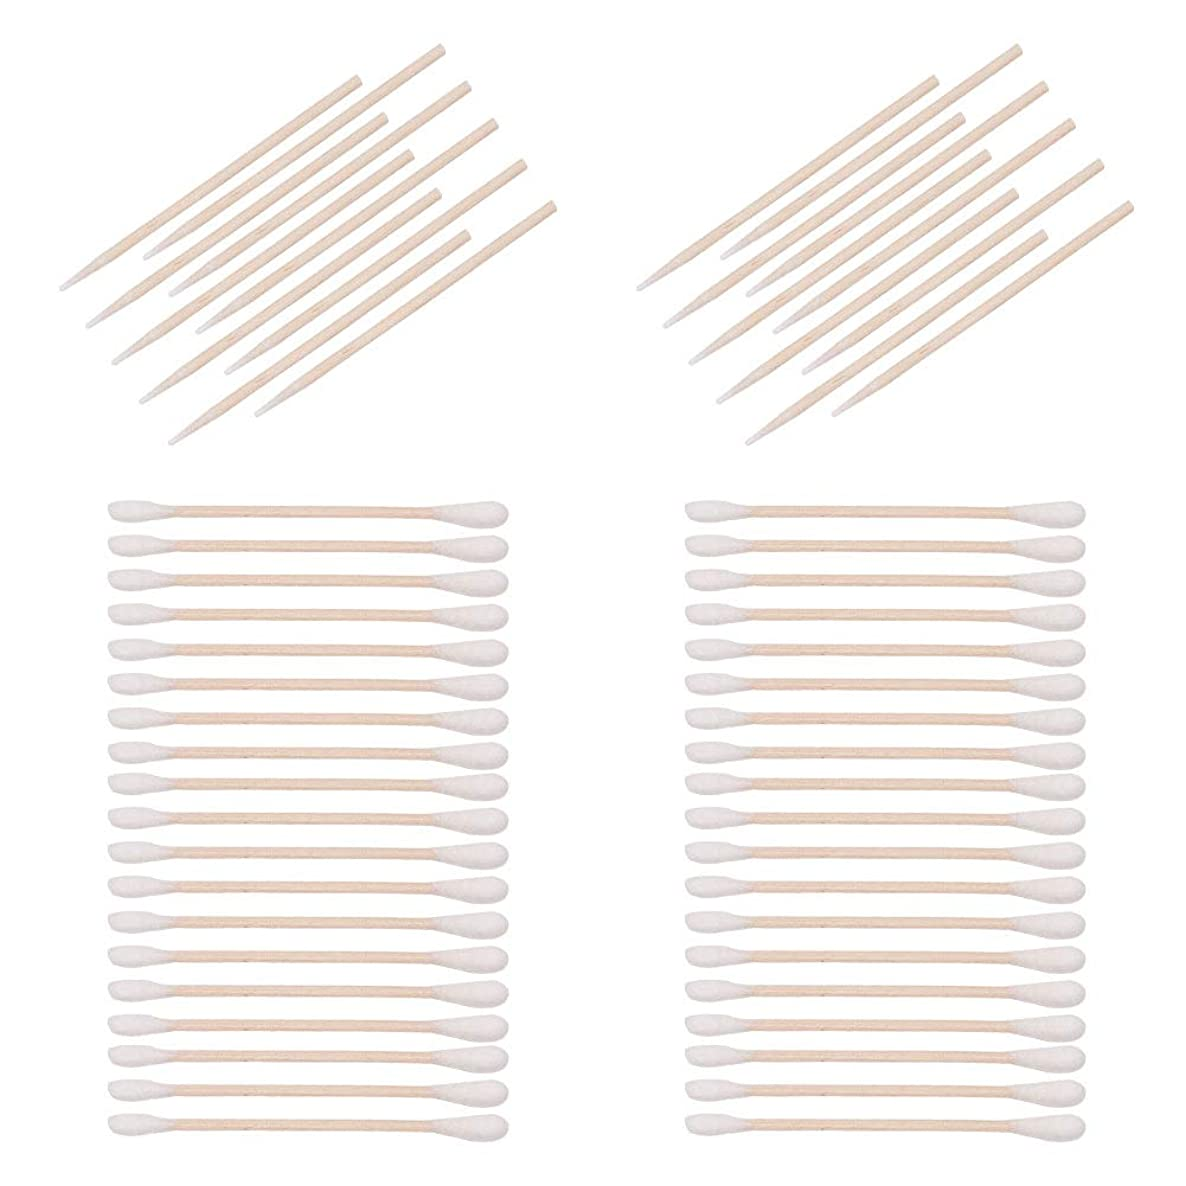 WANDIC Wooden Cotton Swabs Set, 1000 Pcs Swabs Cotton Stick with 2 Styles, 500 Pcs Double-Tipped and 500 Pcs Pointed Cotton Swabs for Oil Makeup Applicators, Remover Tool and Home Accessories